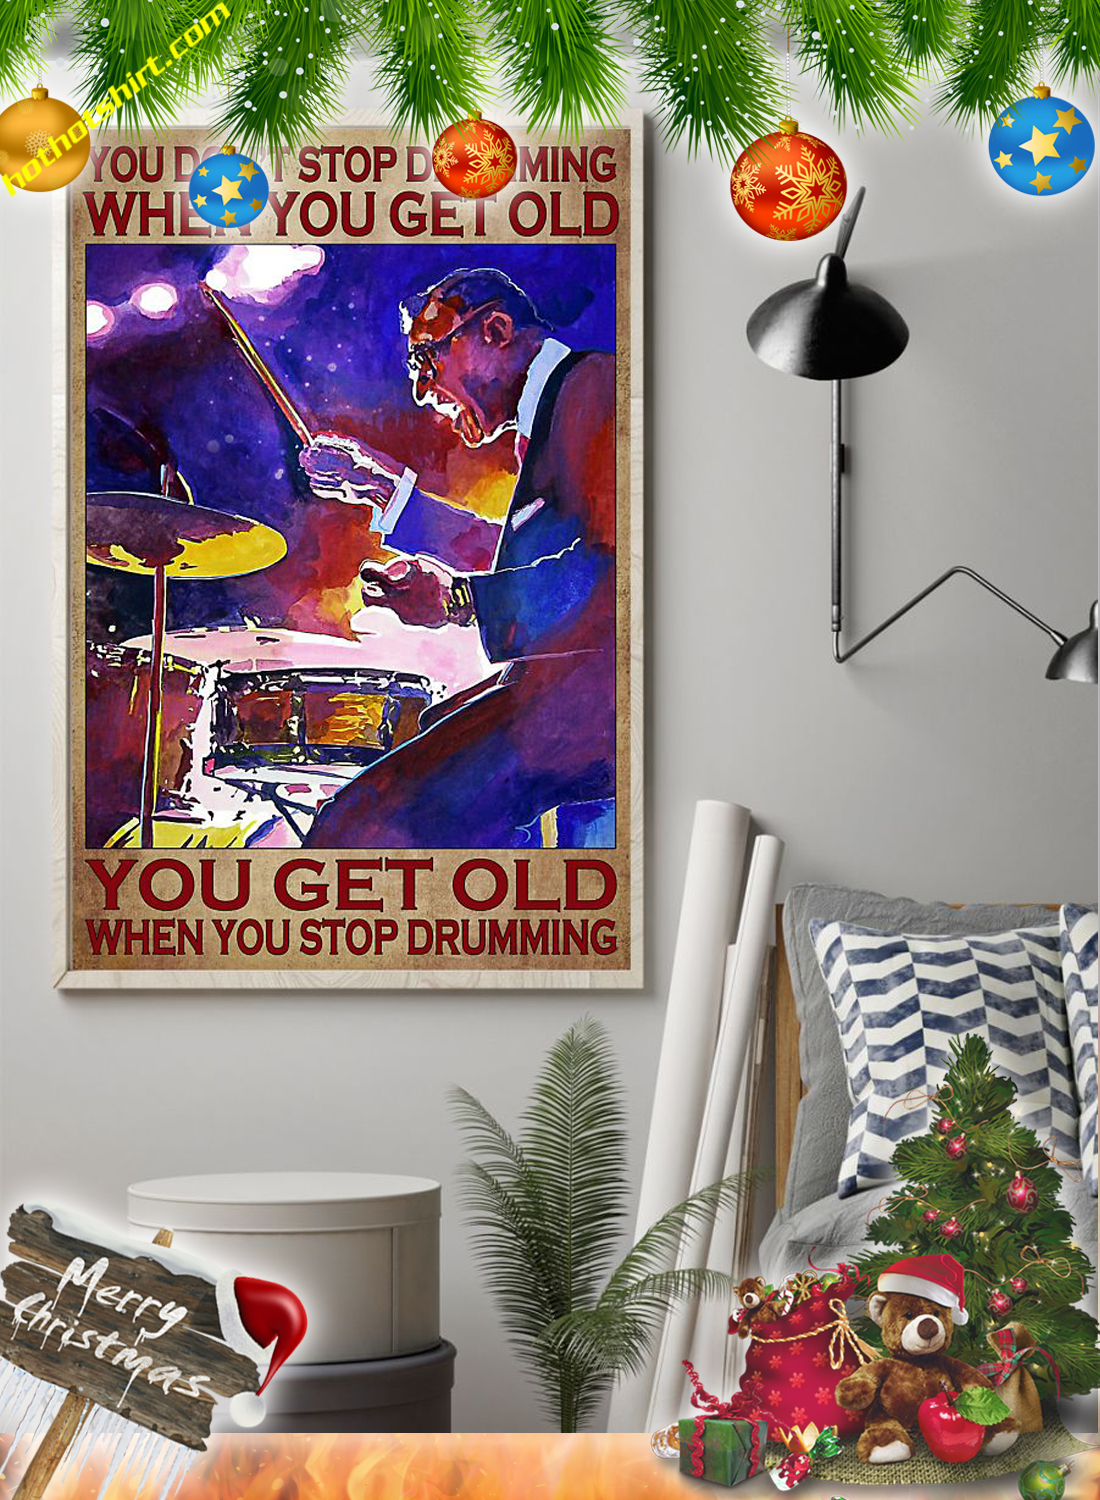 You don't stop drumming when you get old you get old when you stop drumming poster 1